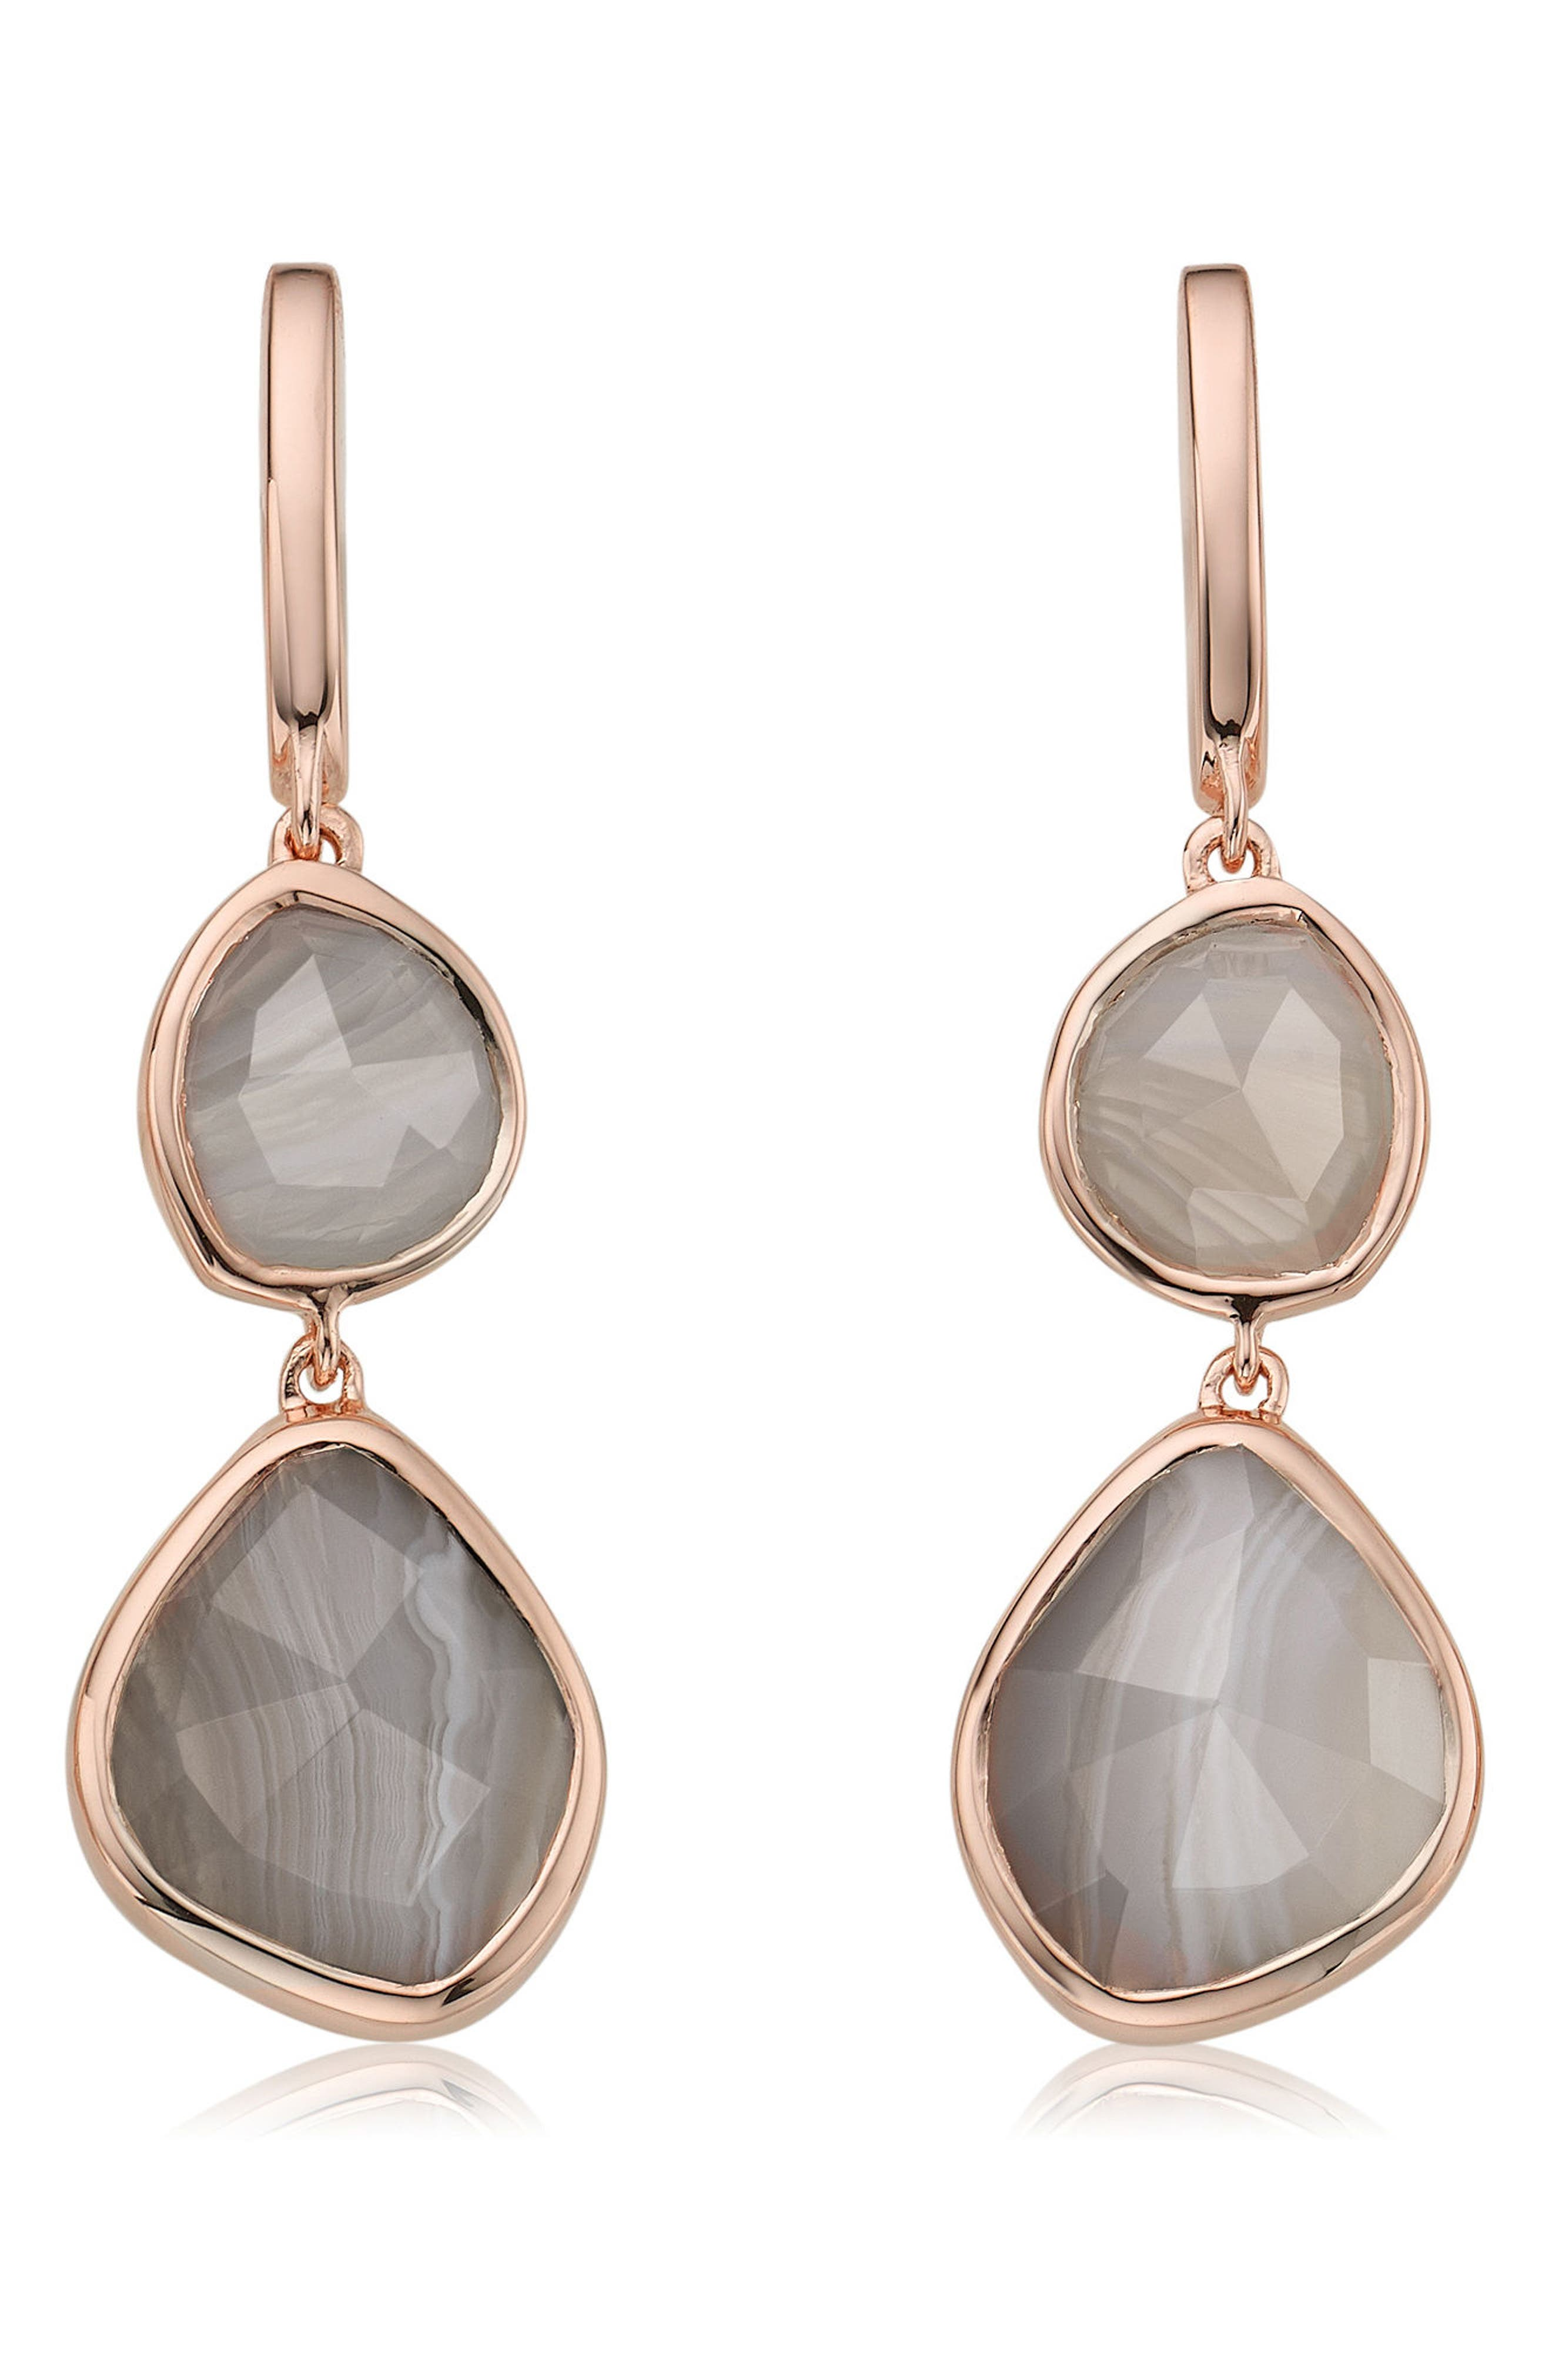 Siren Semiprecious Stone Drop Earrings,                             Main thumbnail 1, color,                             Grey Agate/ Rose Gold